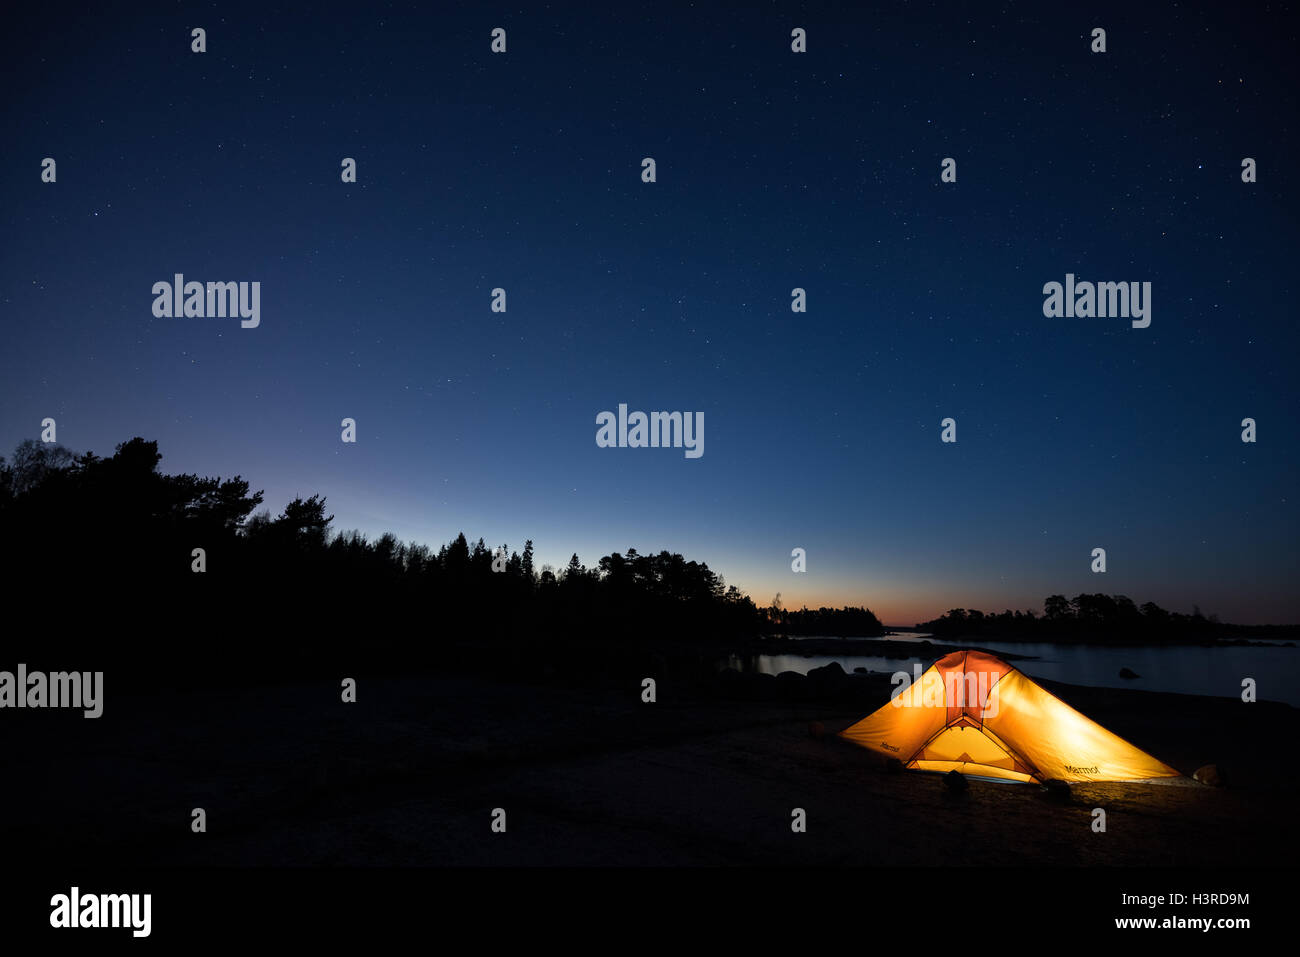 A camp place with a great view at Emäsalo, Porvoo, Finland, Europe, EU - Stock Image